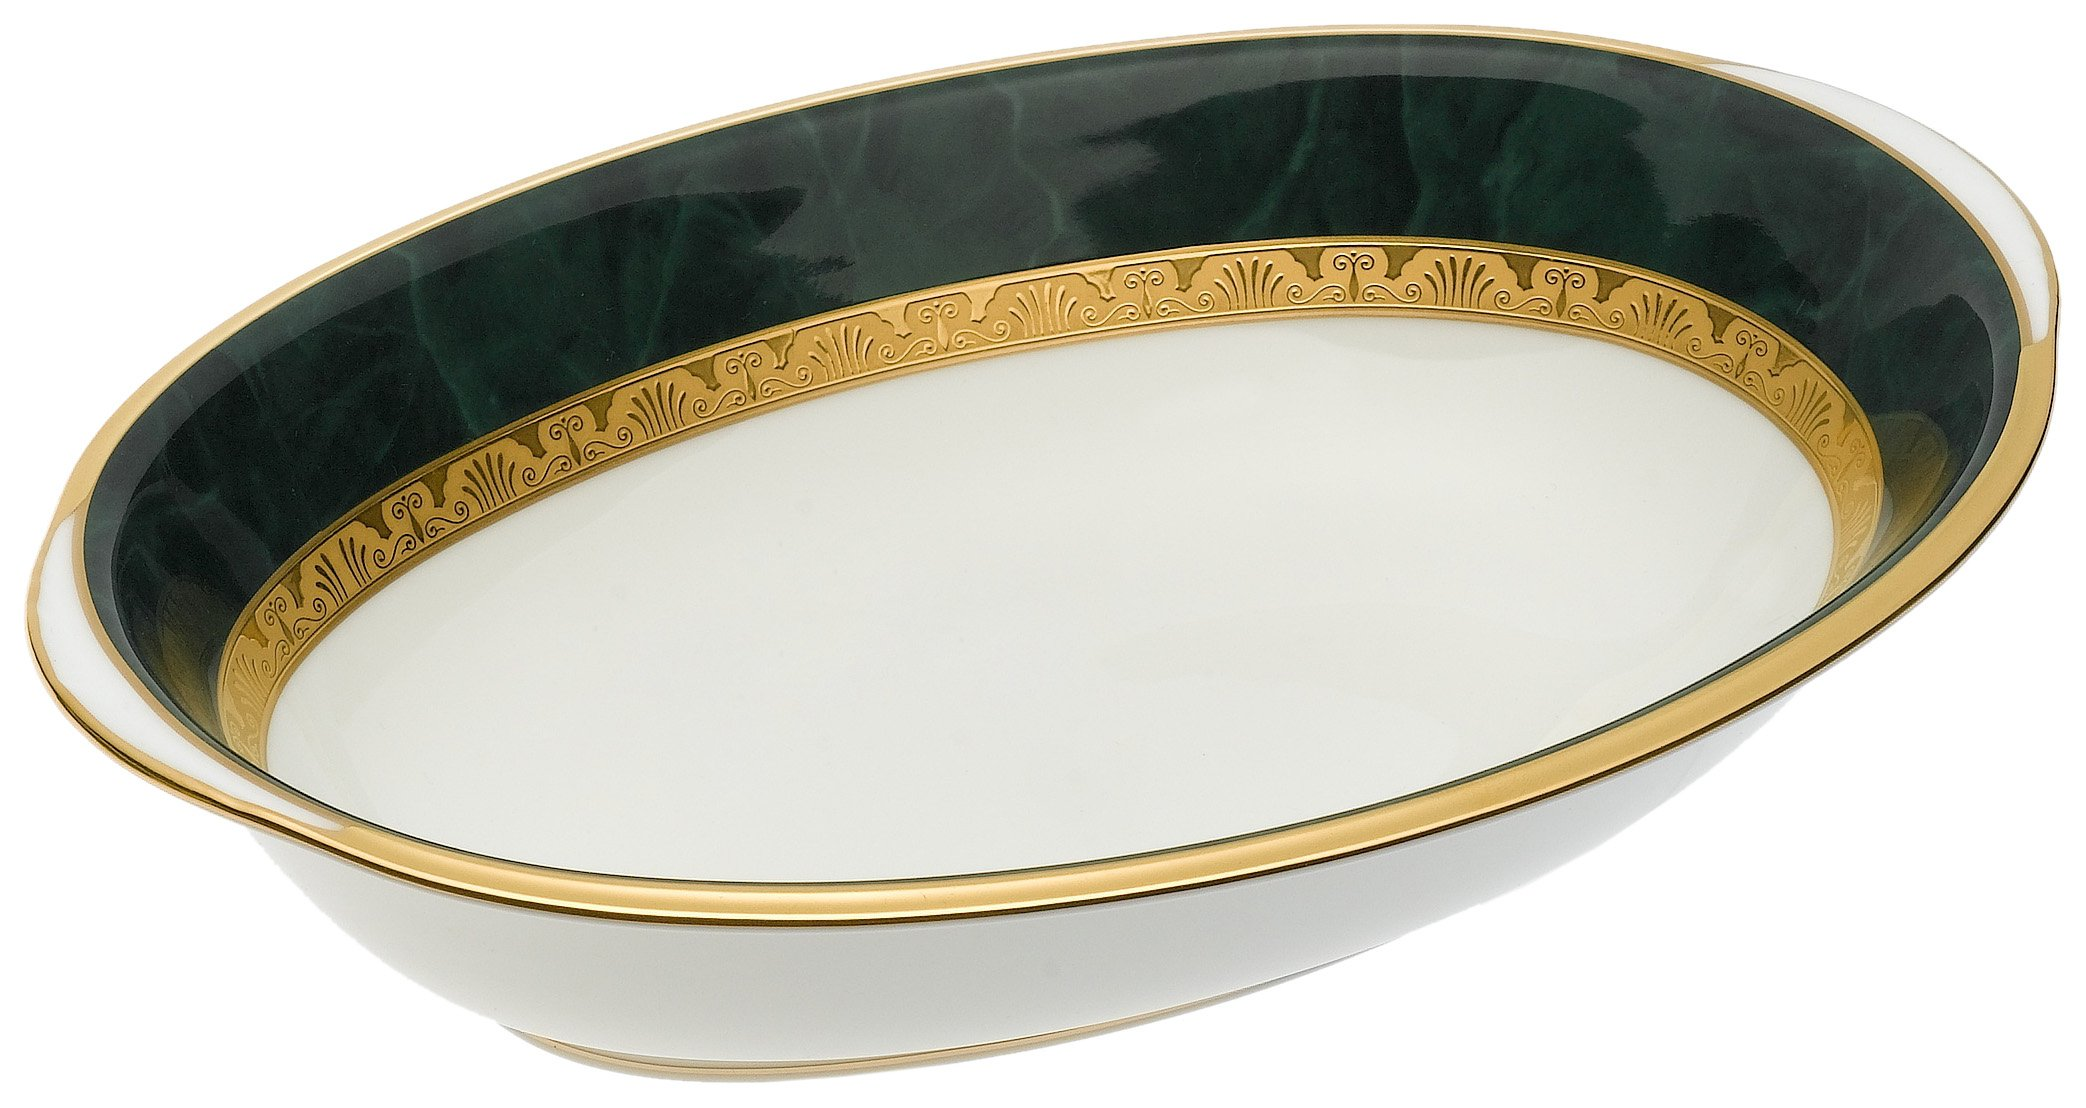 Noritake Fitzgerald Oval Vegetable Bowl